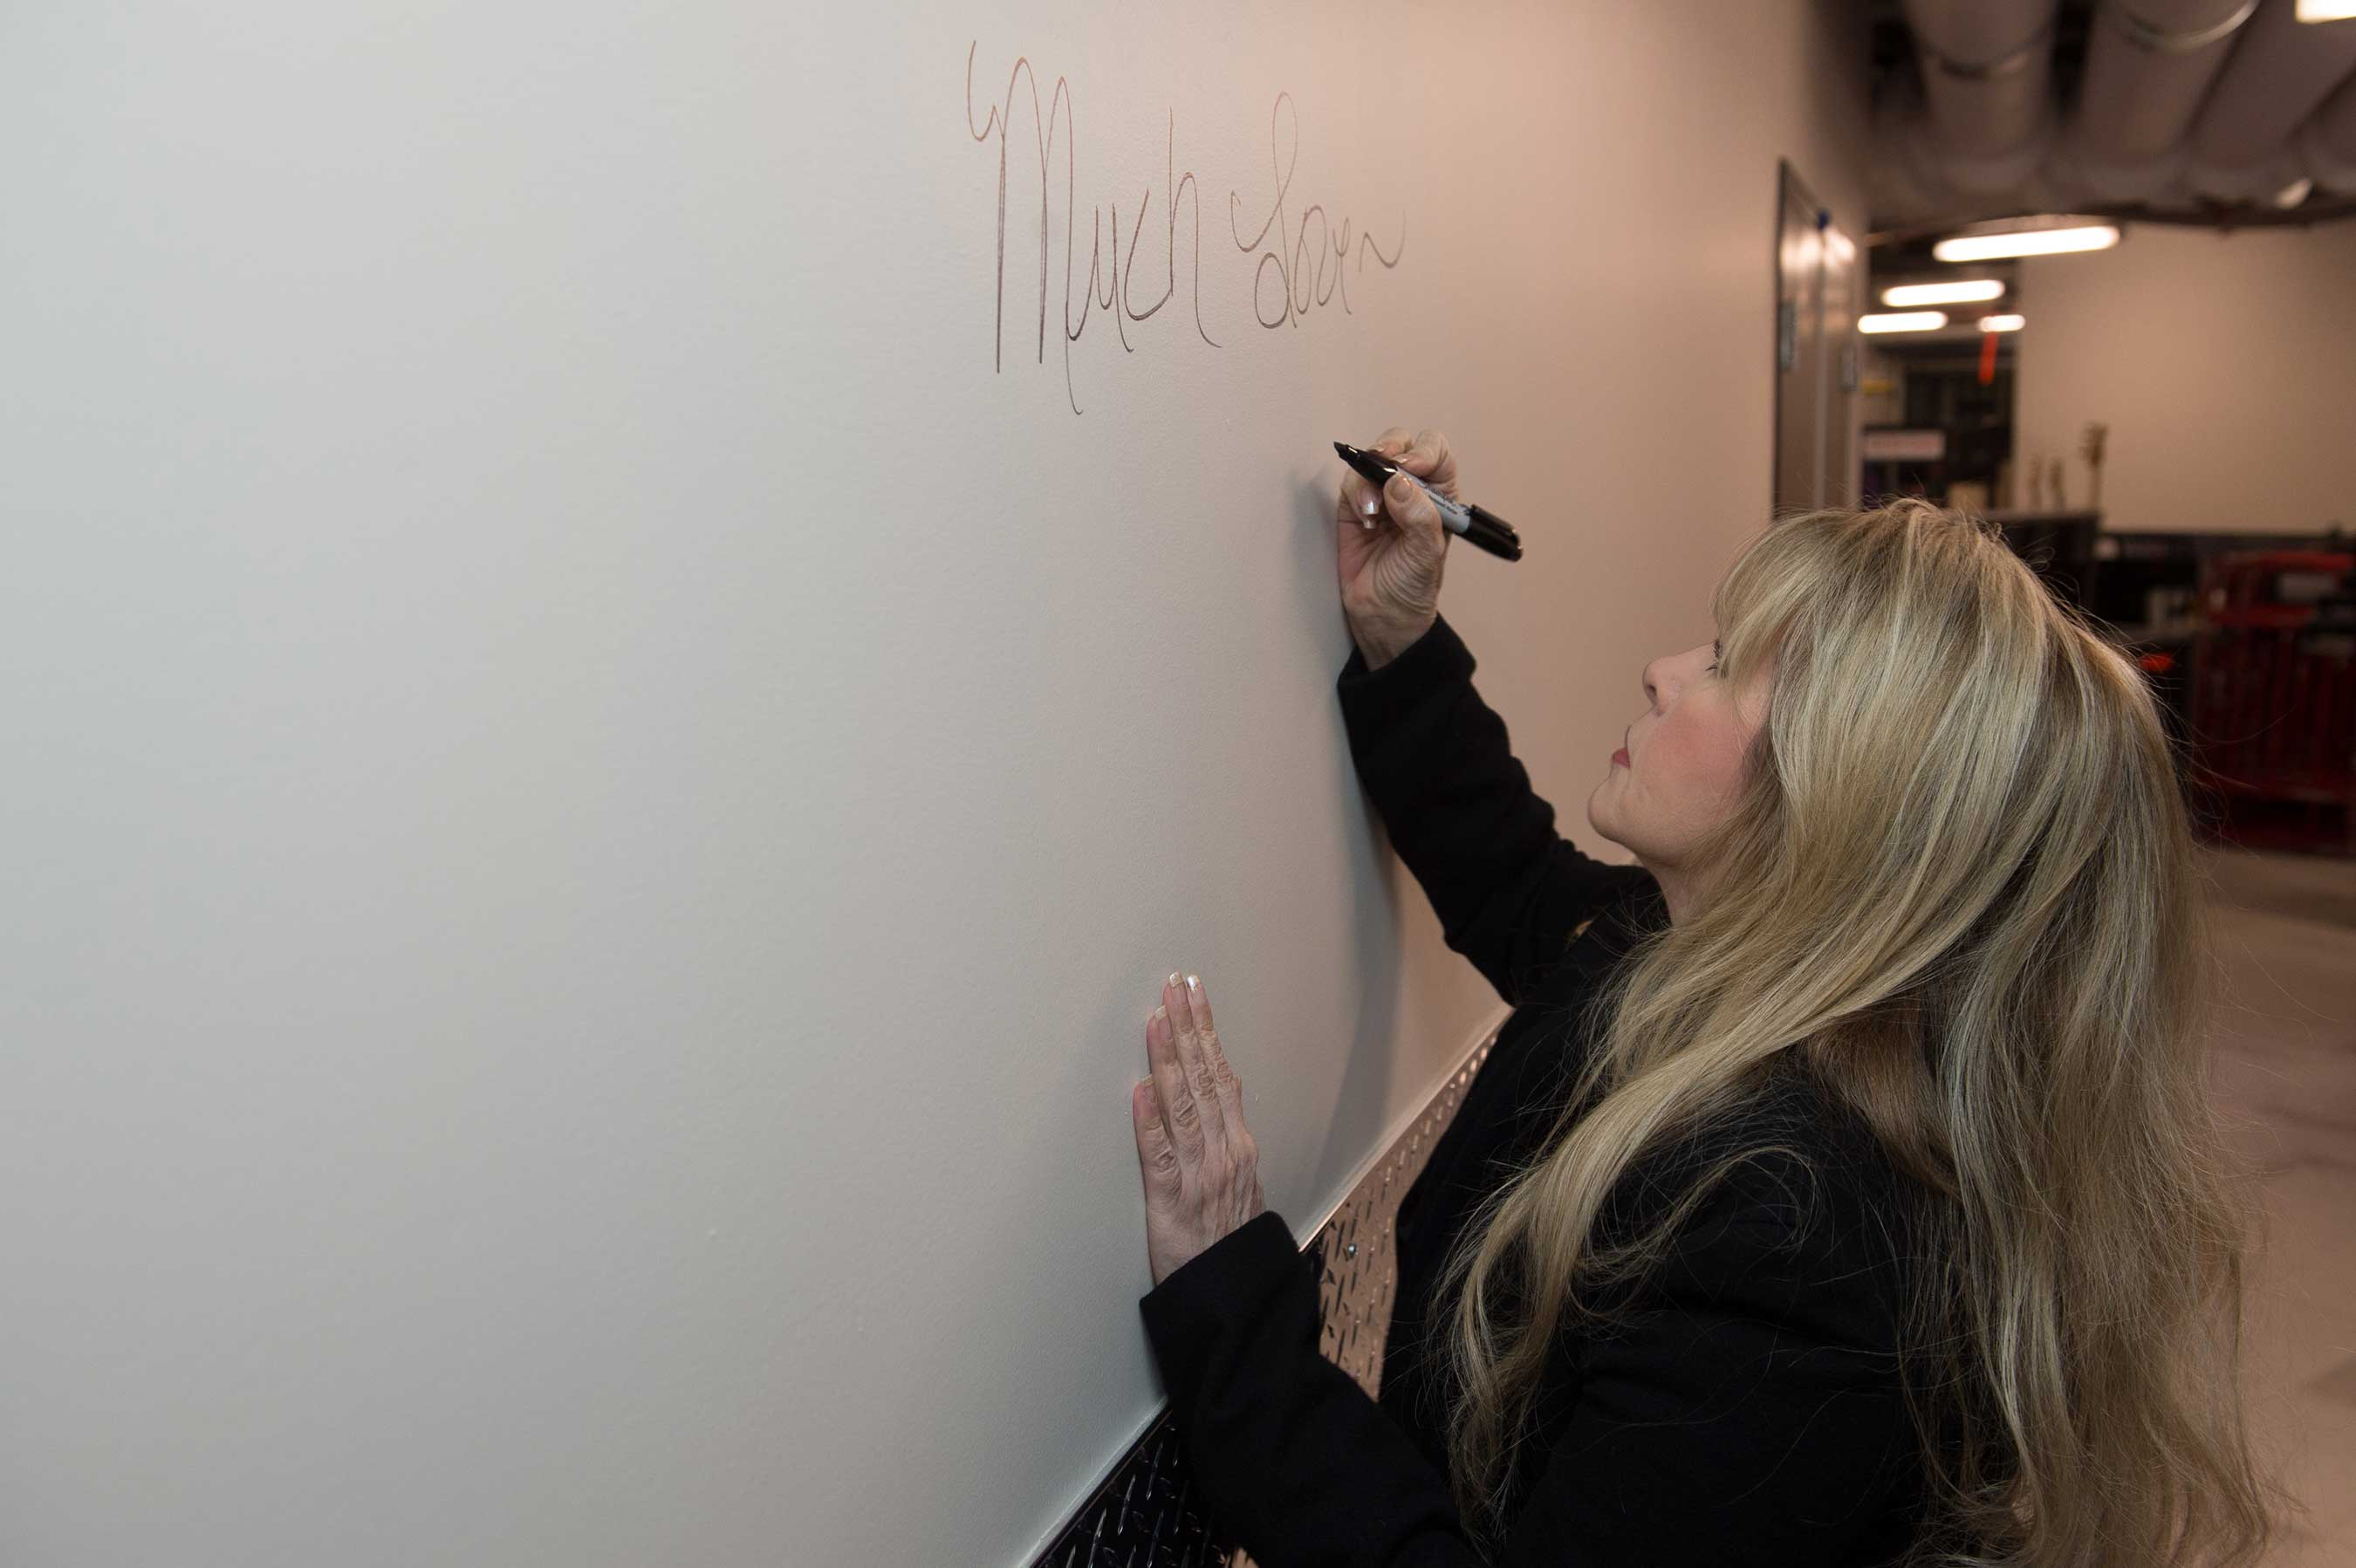 Legendary Singer-Songwriter Stevie Nicks Autographs Wall Backstage at Grand Opening of Park Theater at Monte Carlo in Las Vegas - Sat., Dec. 17, 2016 - Photo by Al Powers for Park Theater